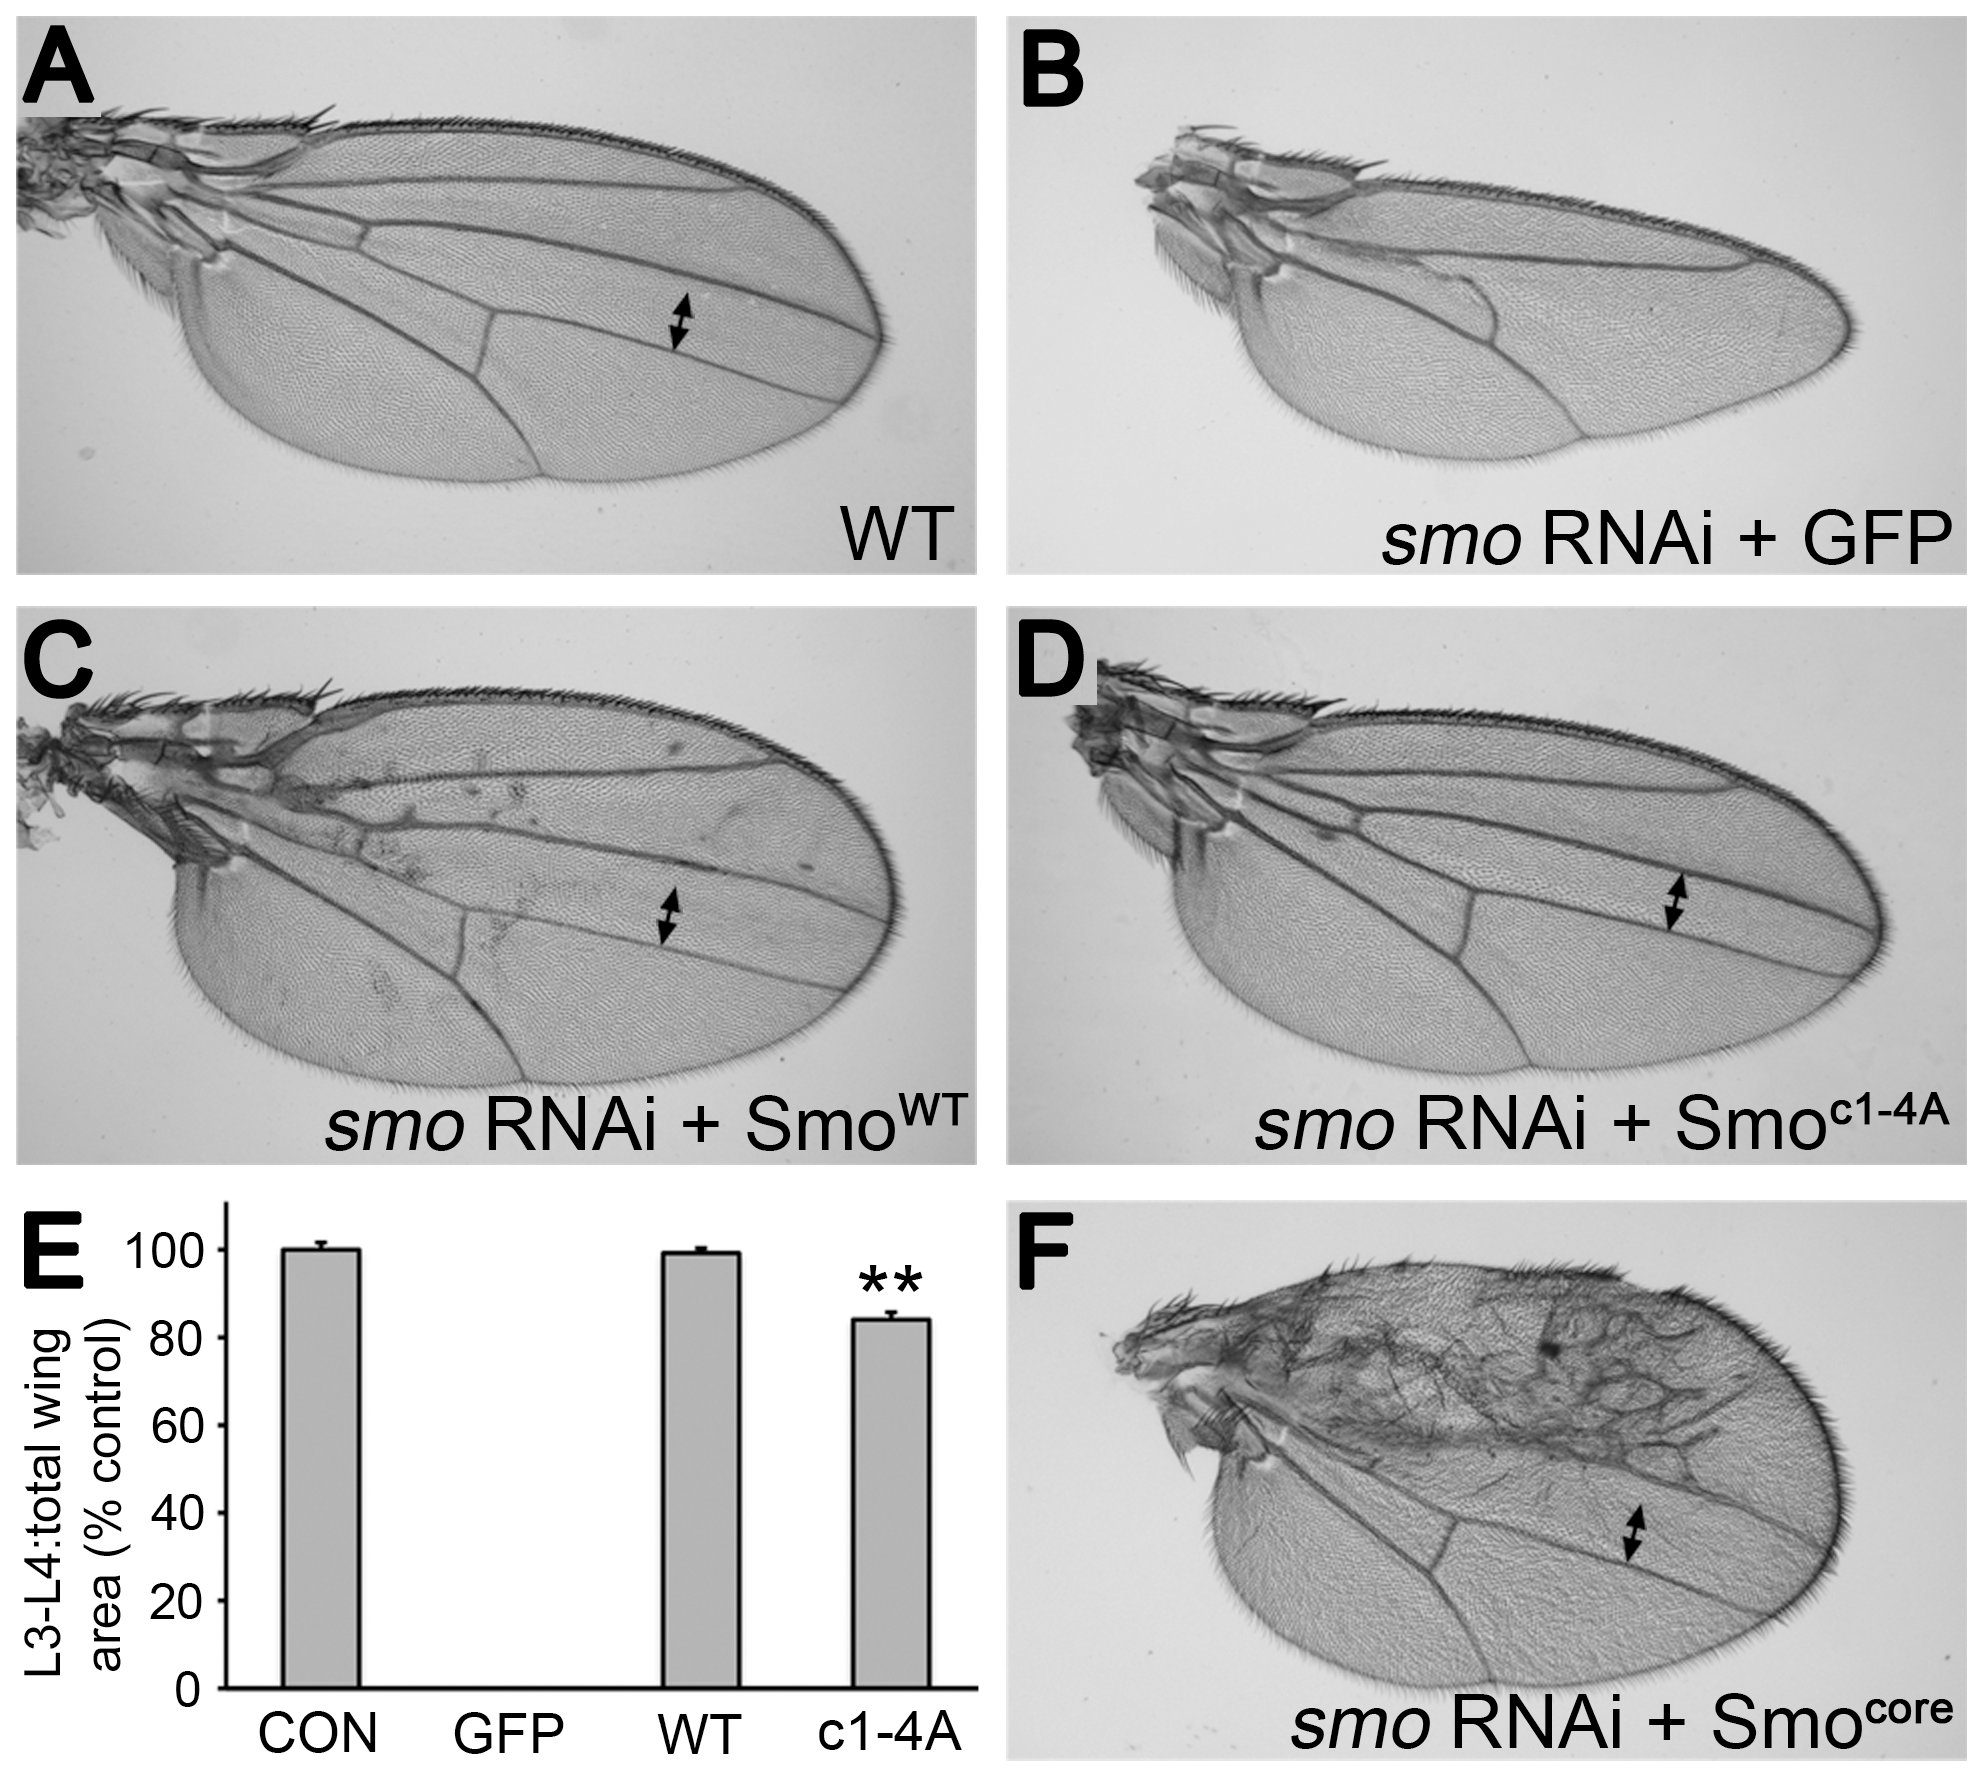 Smo<sup>c1-4A</sup> substantially but not fully rescues development of wings depleted of endogenous Smo.